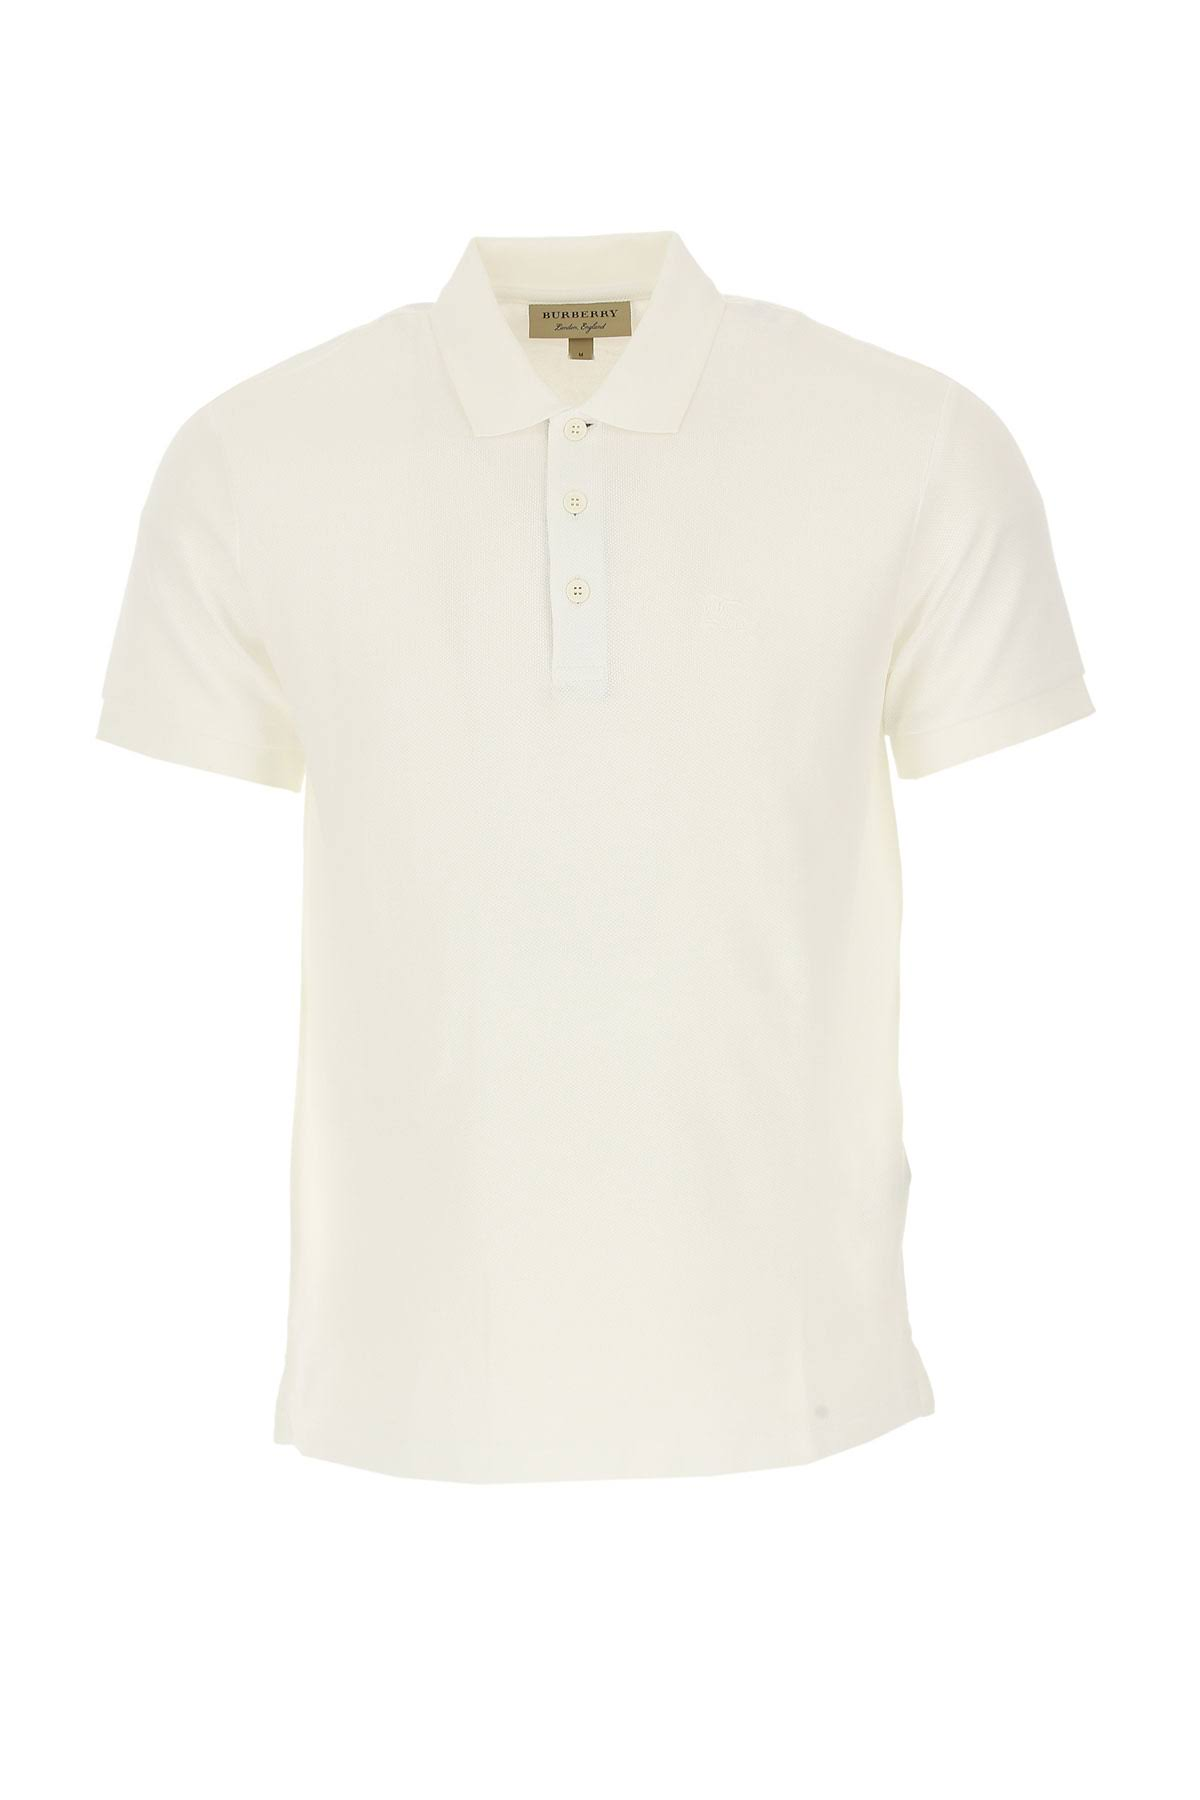 Polo Burberry Polo Burberry ShirtBiancoM Burberry Polo ShirtBiancoM f6gyYvb7